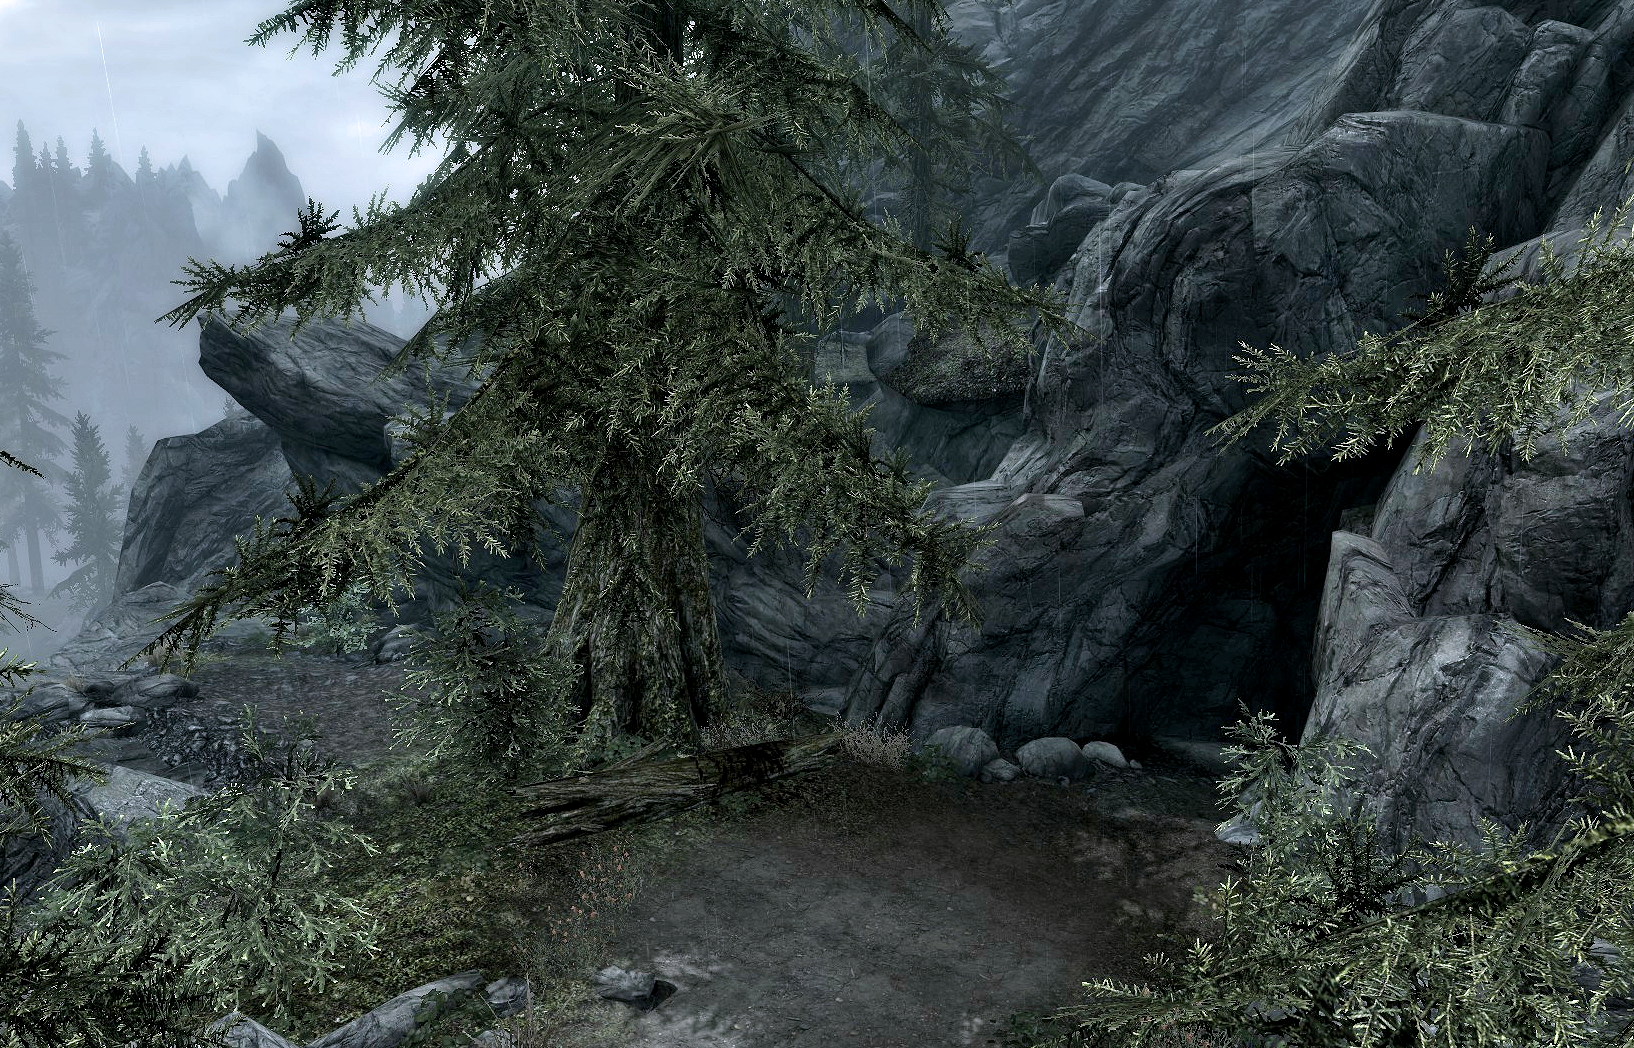 Moss Mother Cavern Is A Cave Located In The Elder Scrolls V Skyrim It Is West Of Whiterun And Almost Direc Nature Inspiration Cavern Lost Mines Of Phandelver